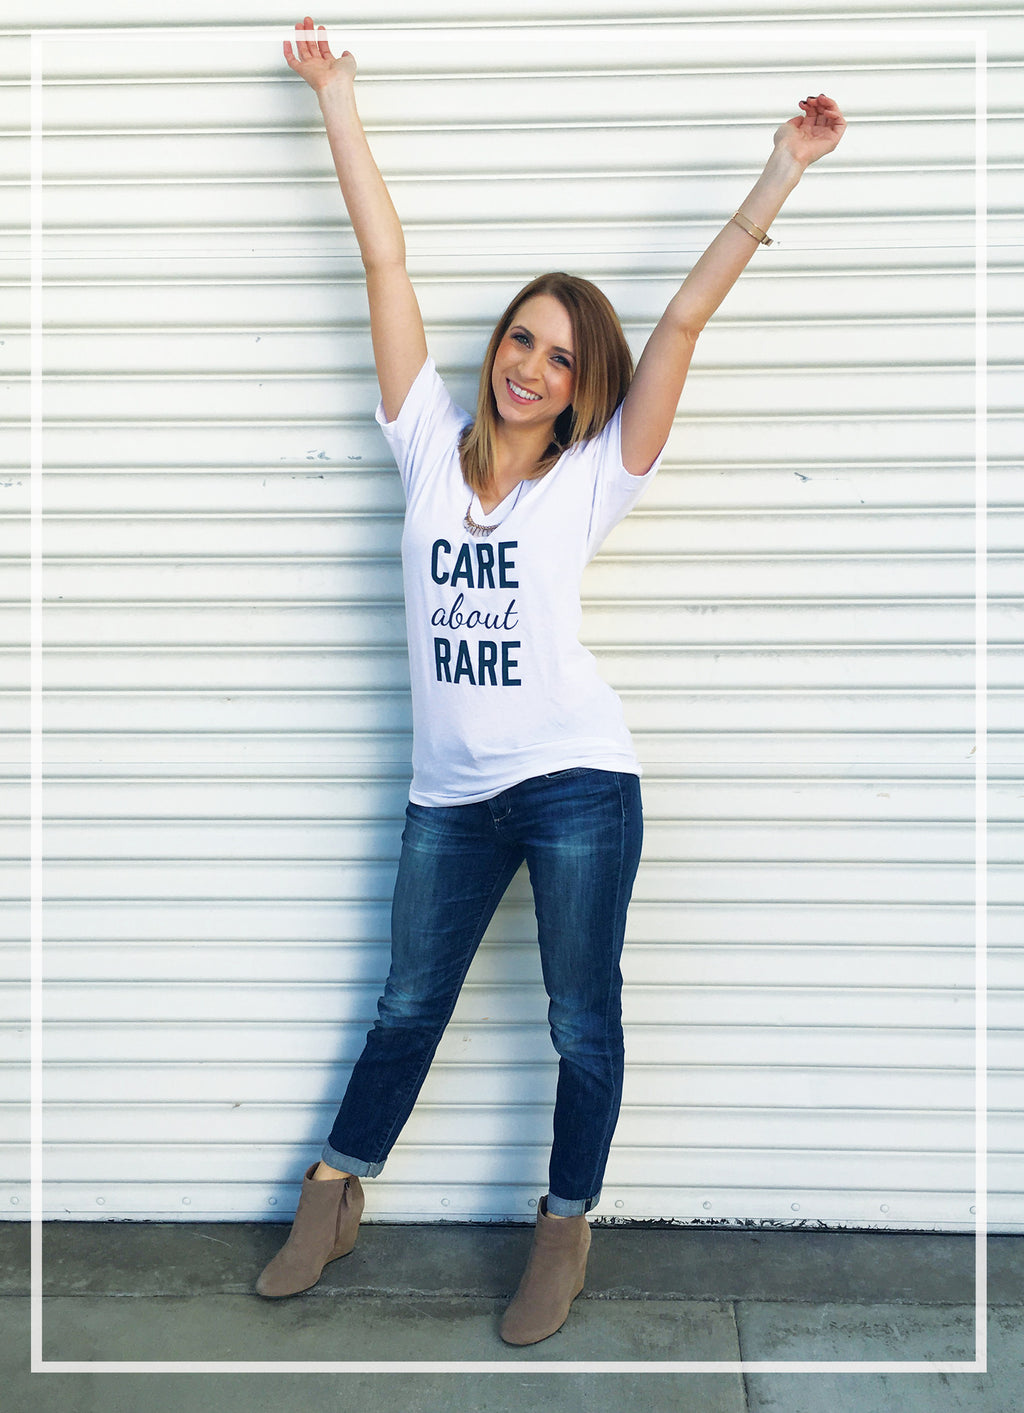 Care about Rare T-Shirt